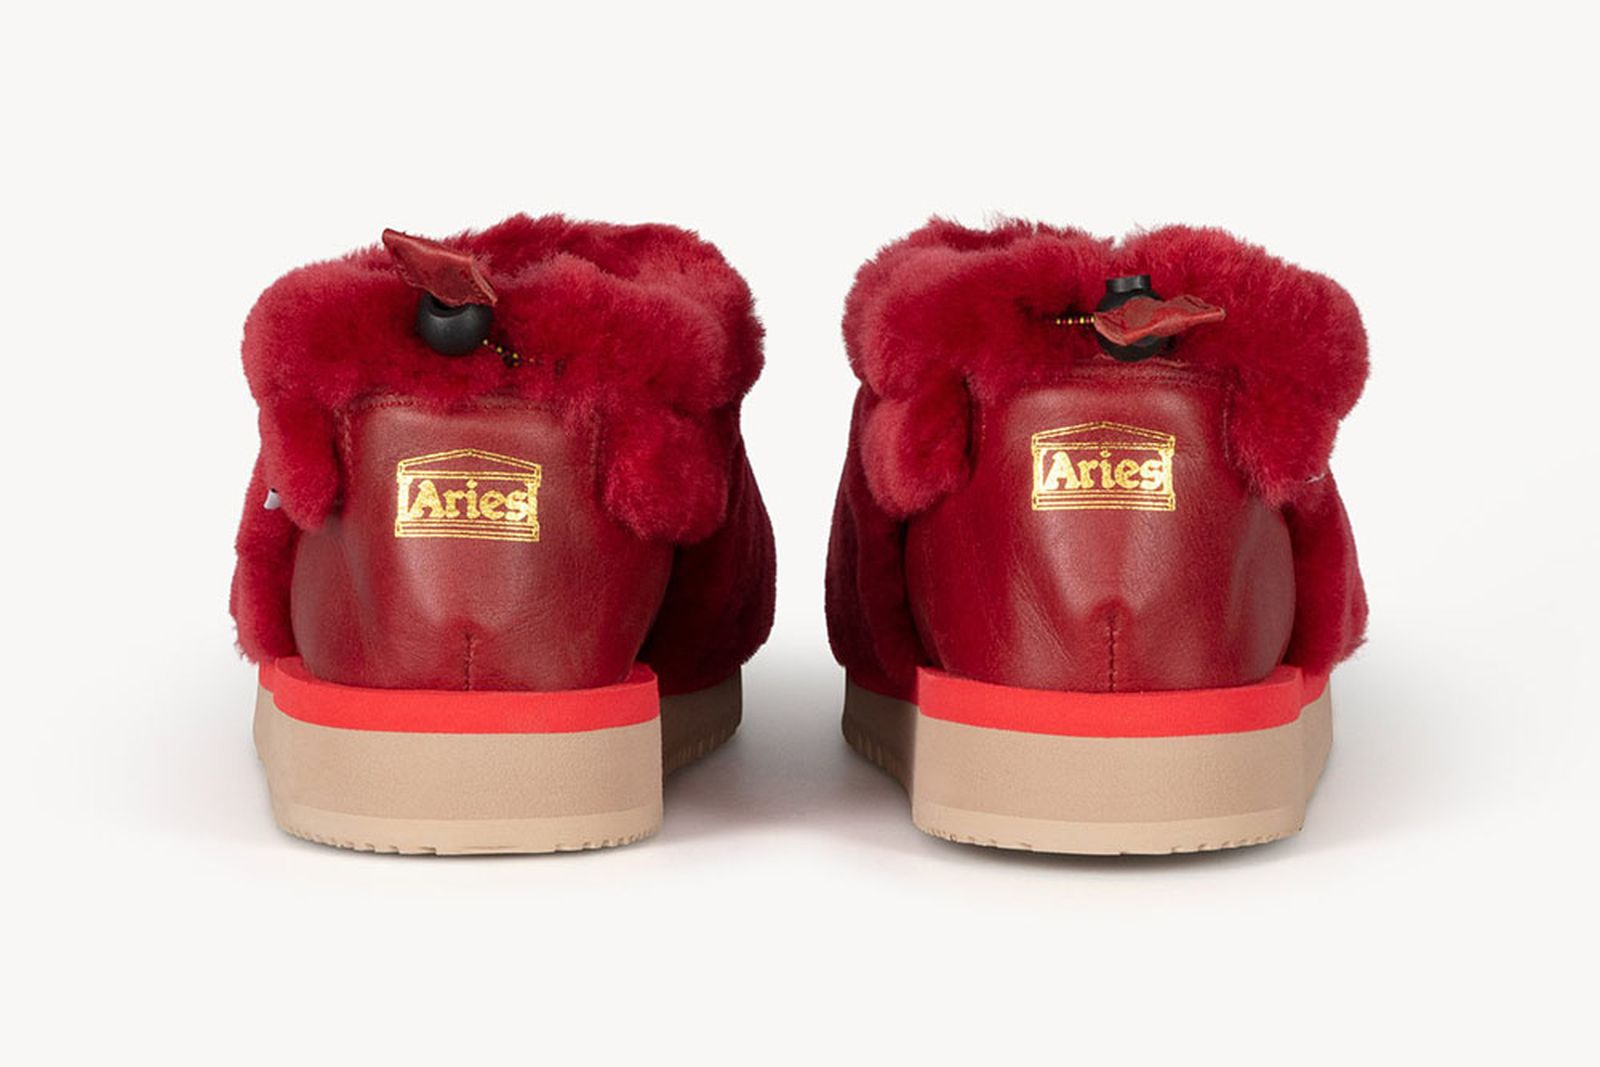 aries-suicoke-ron-release-date-price-12